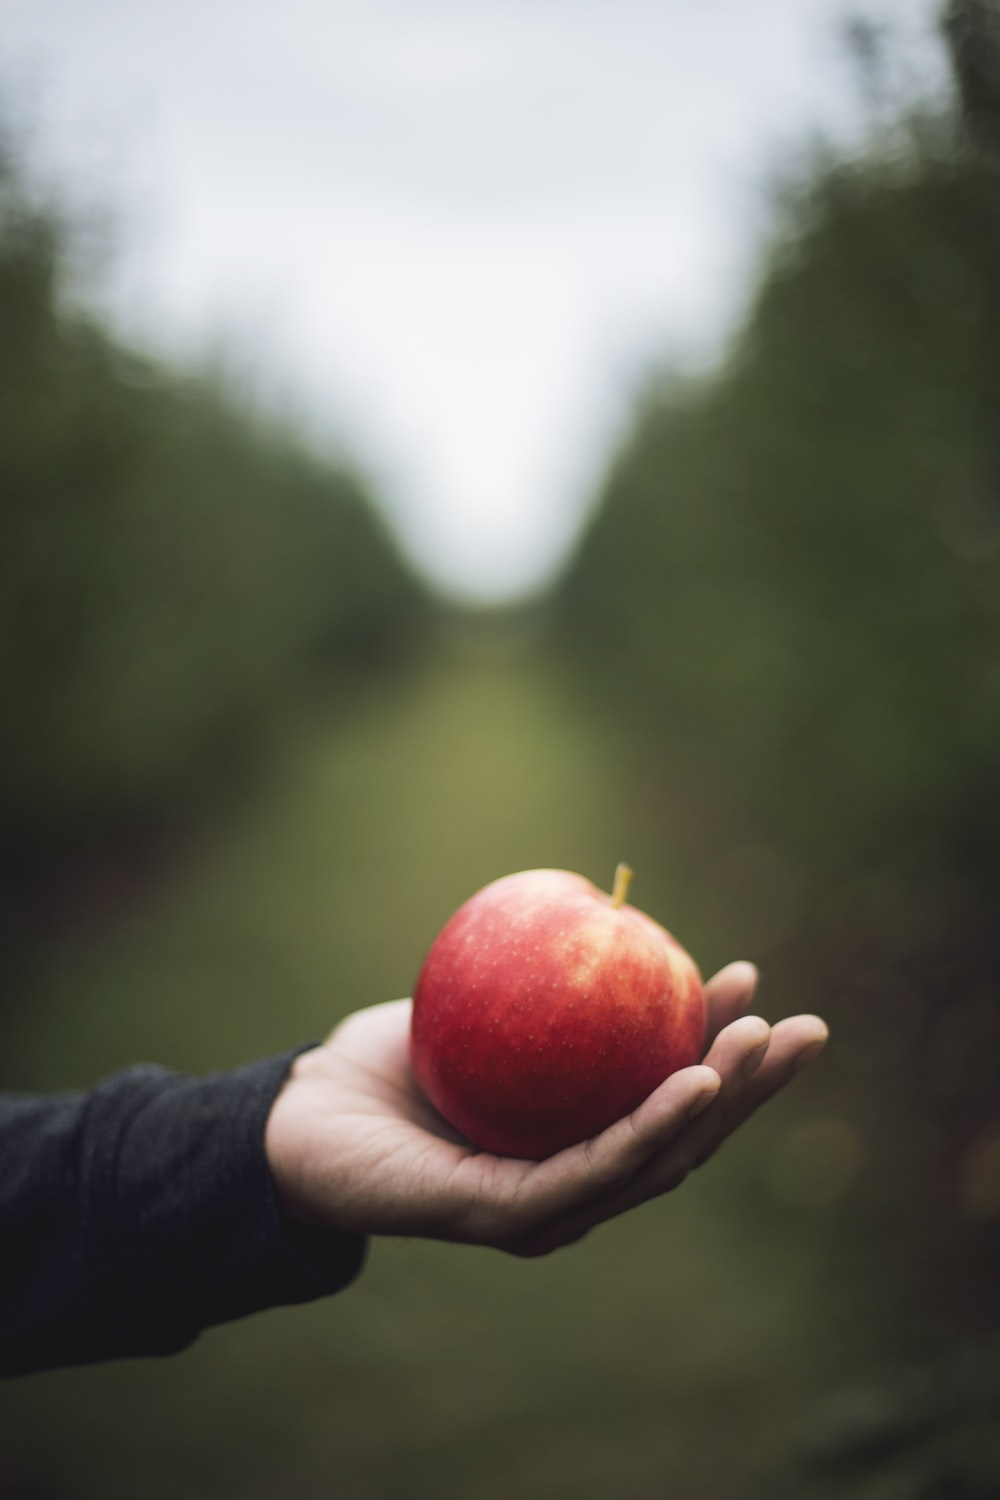 apple on person's hand